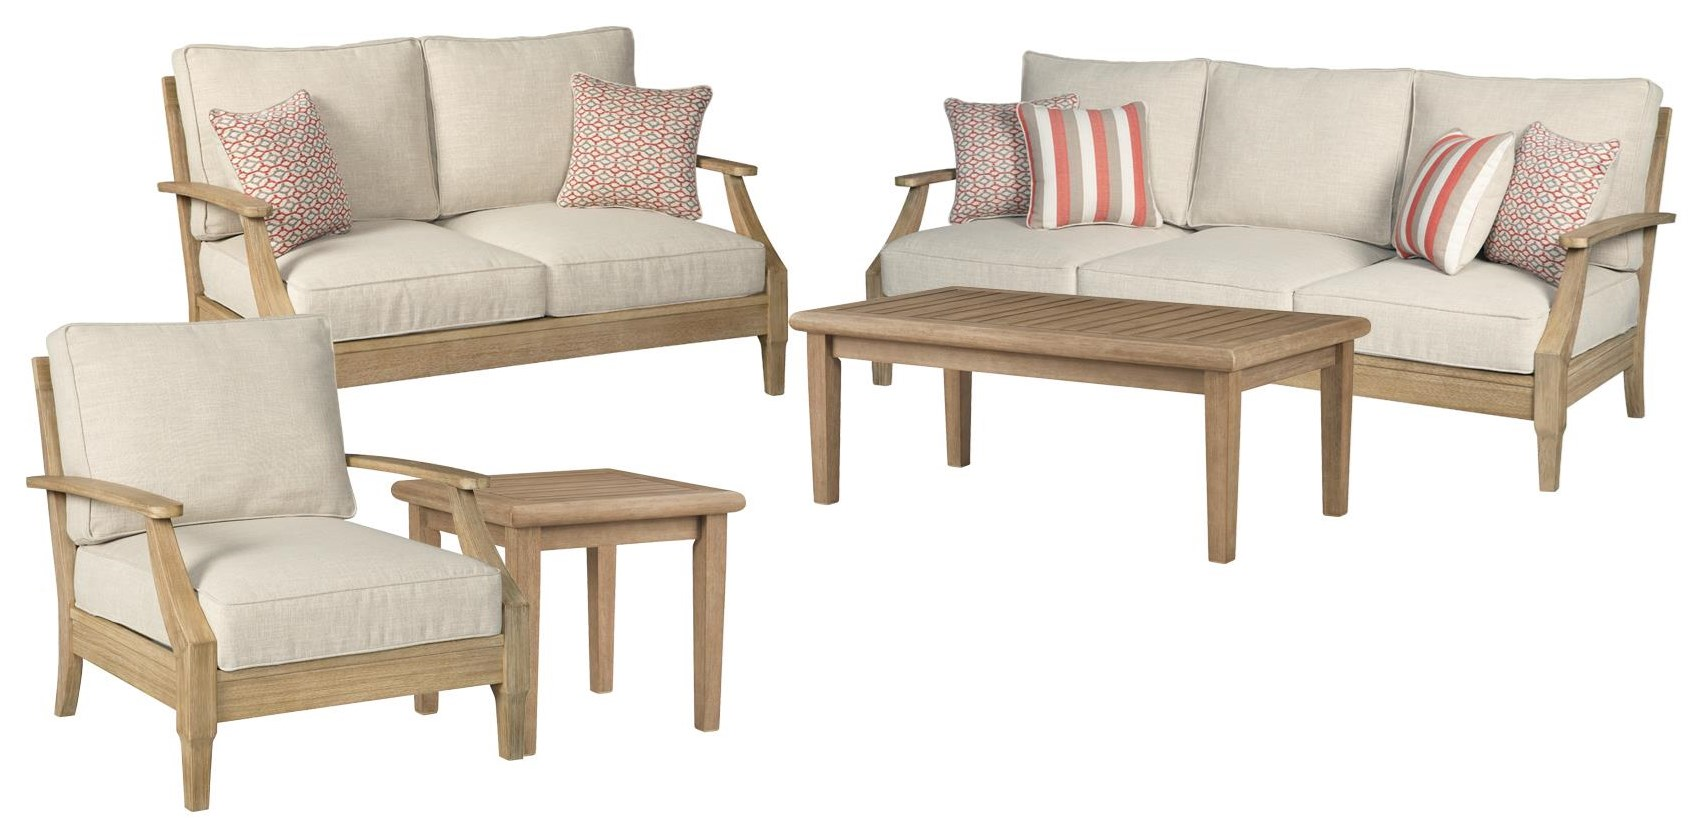 Clare View SOFA, LOVESEAT, CHAIR, COCKTAIL, END TABLE by Ashley (Signature Design) at Johnny Janosik